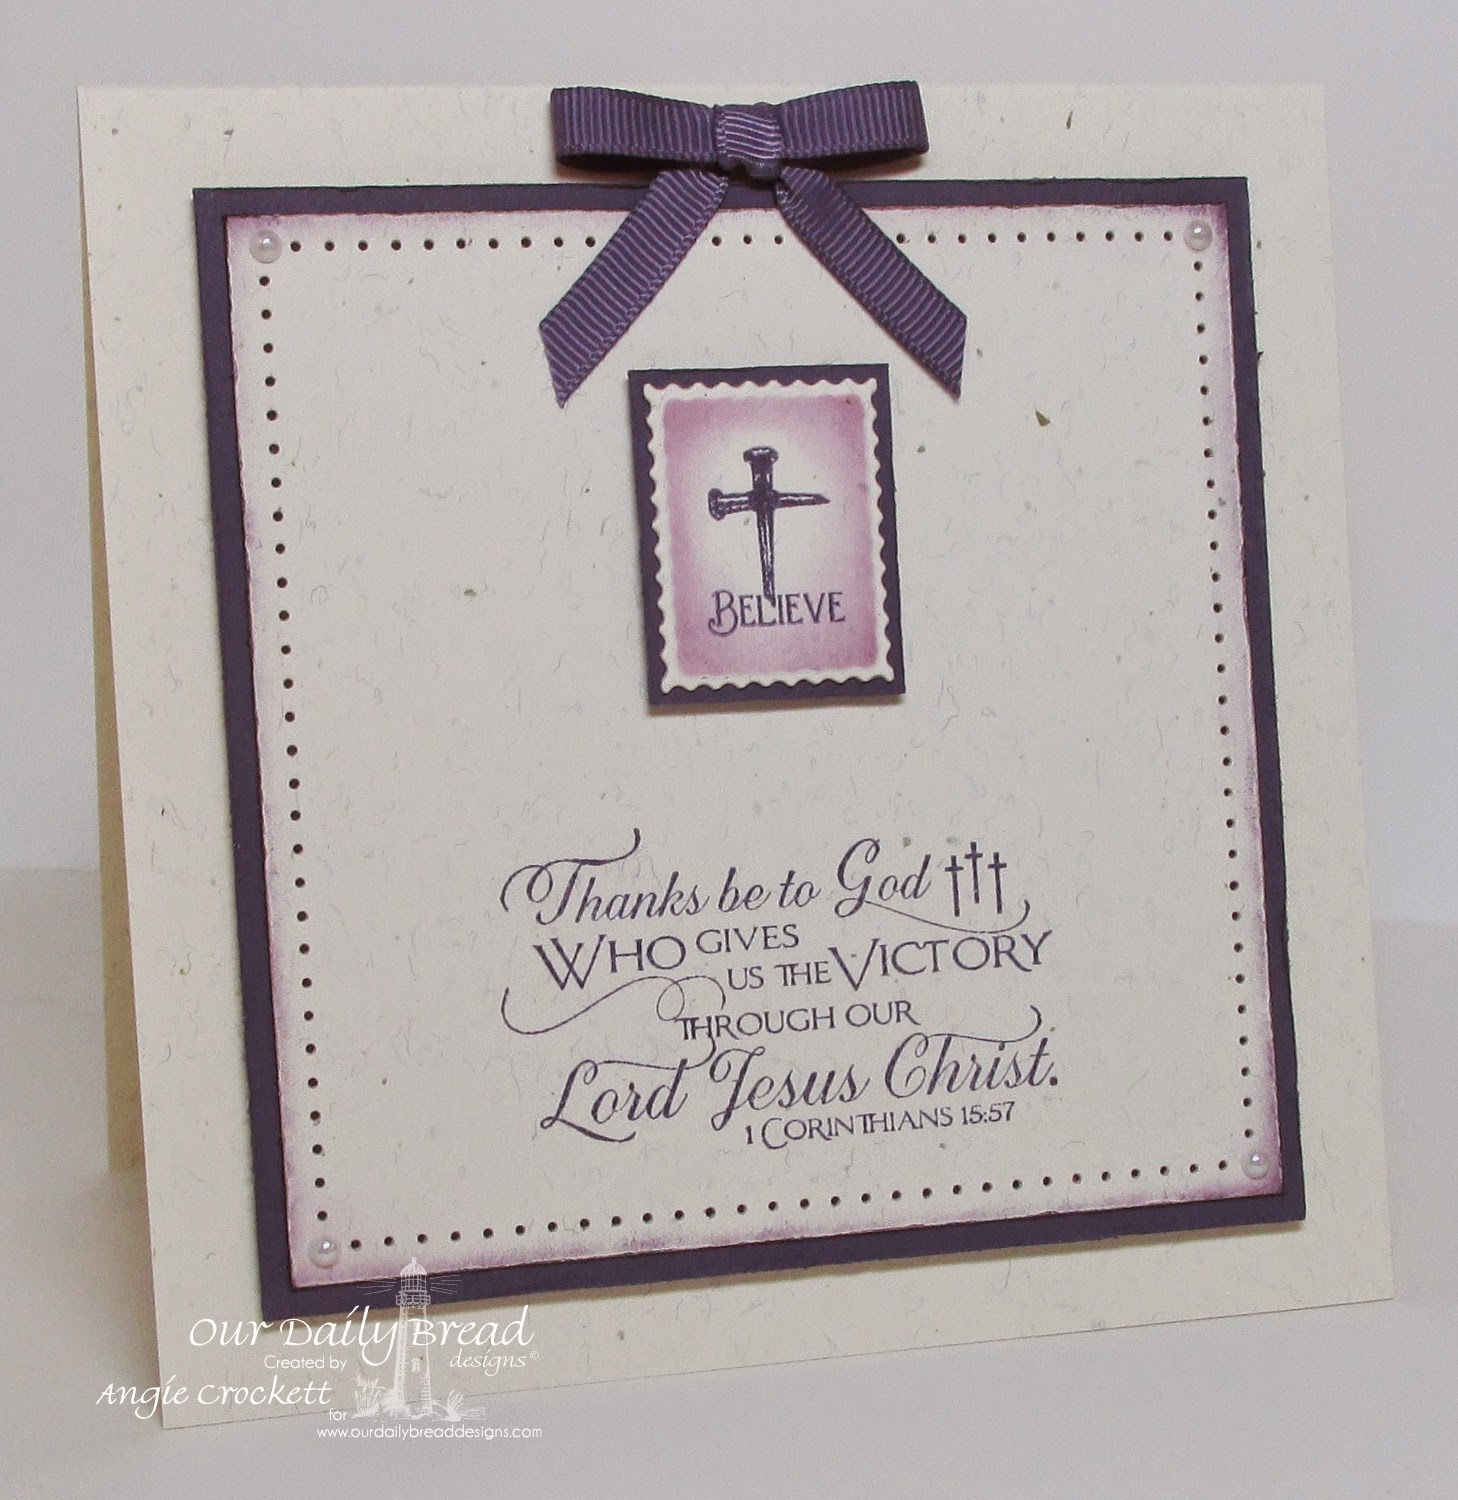 ODBD Scripture Collection 10, Admit One, ODBD Custom Mini Tags Dies, Card Designer Angie Crockett